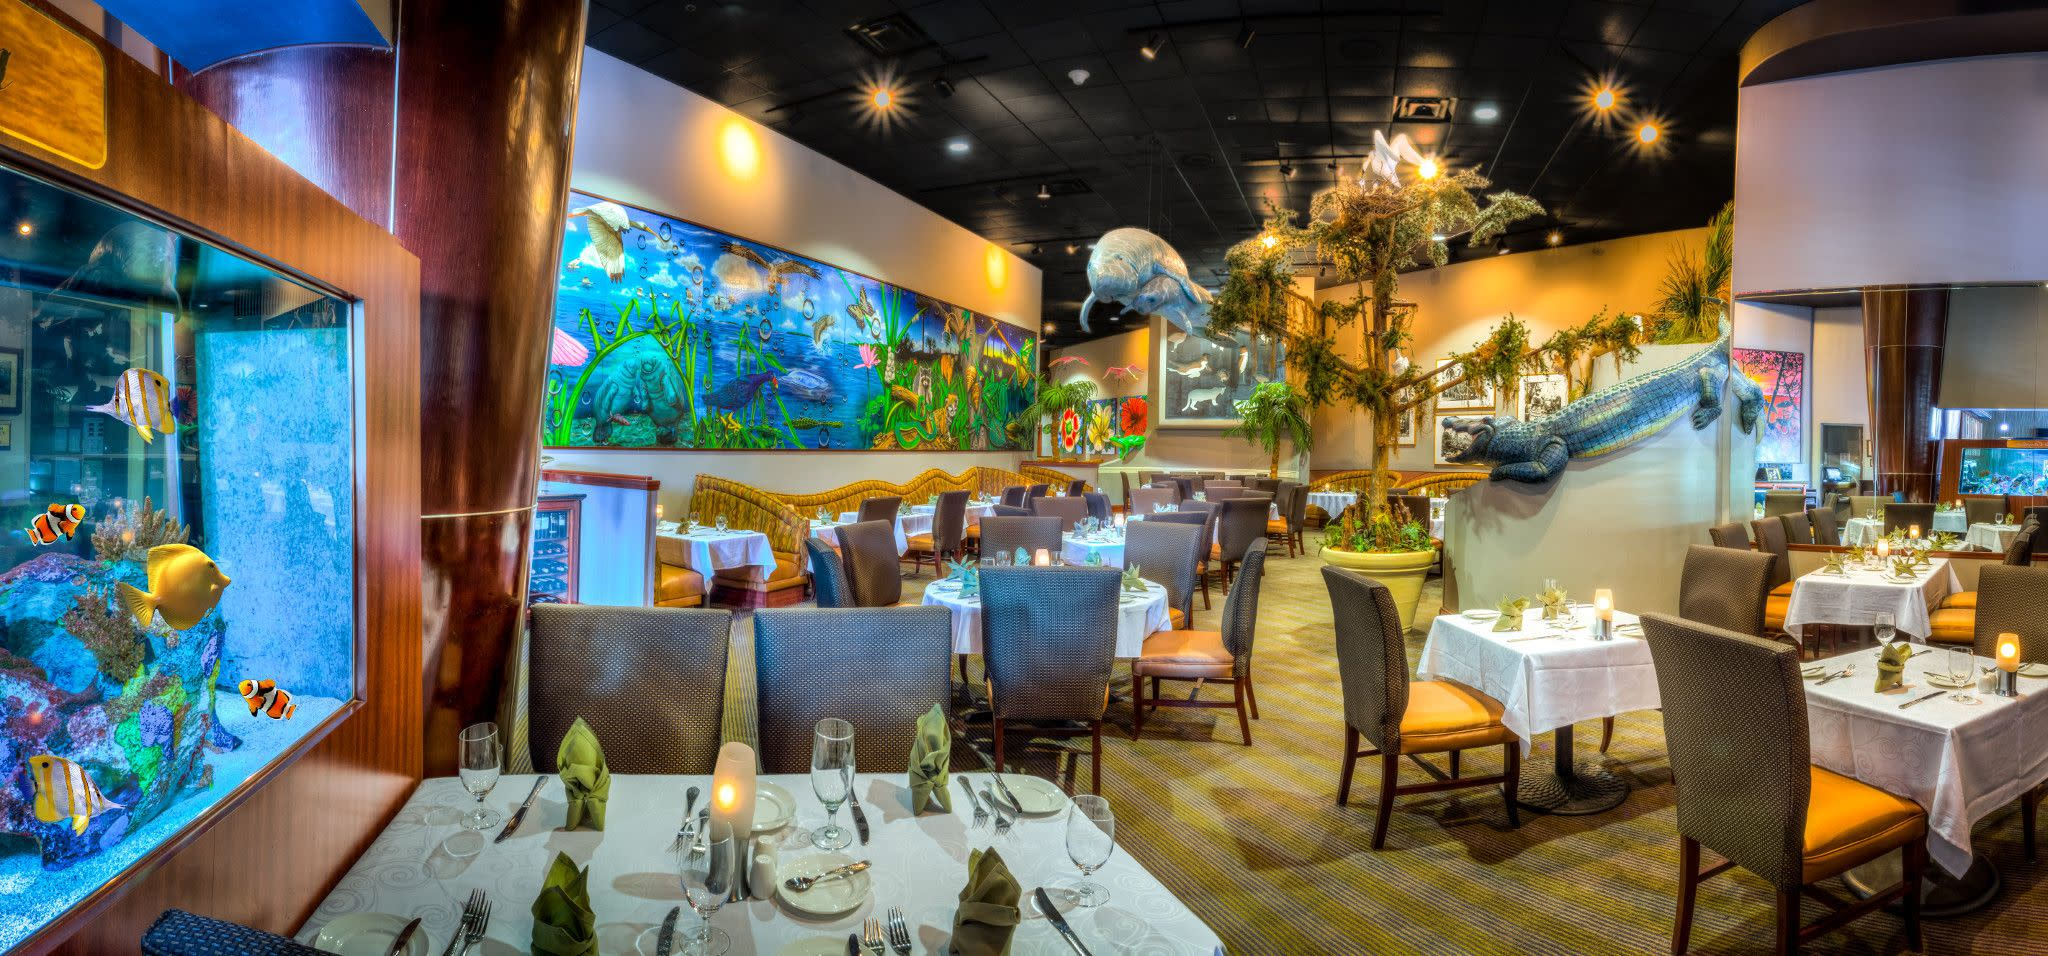 Everglades Restaurant in Orlando